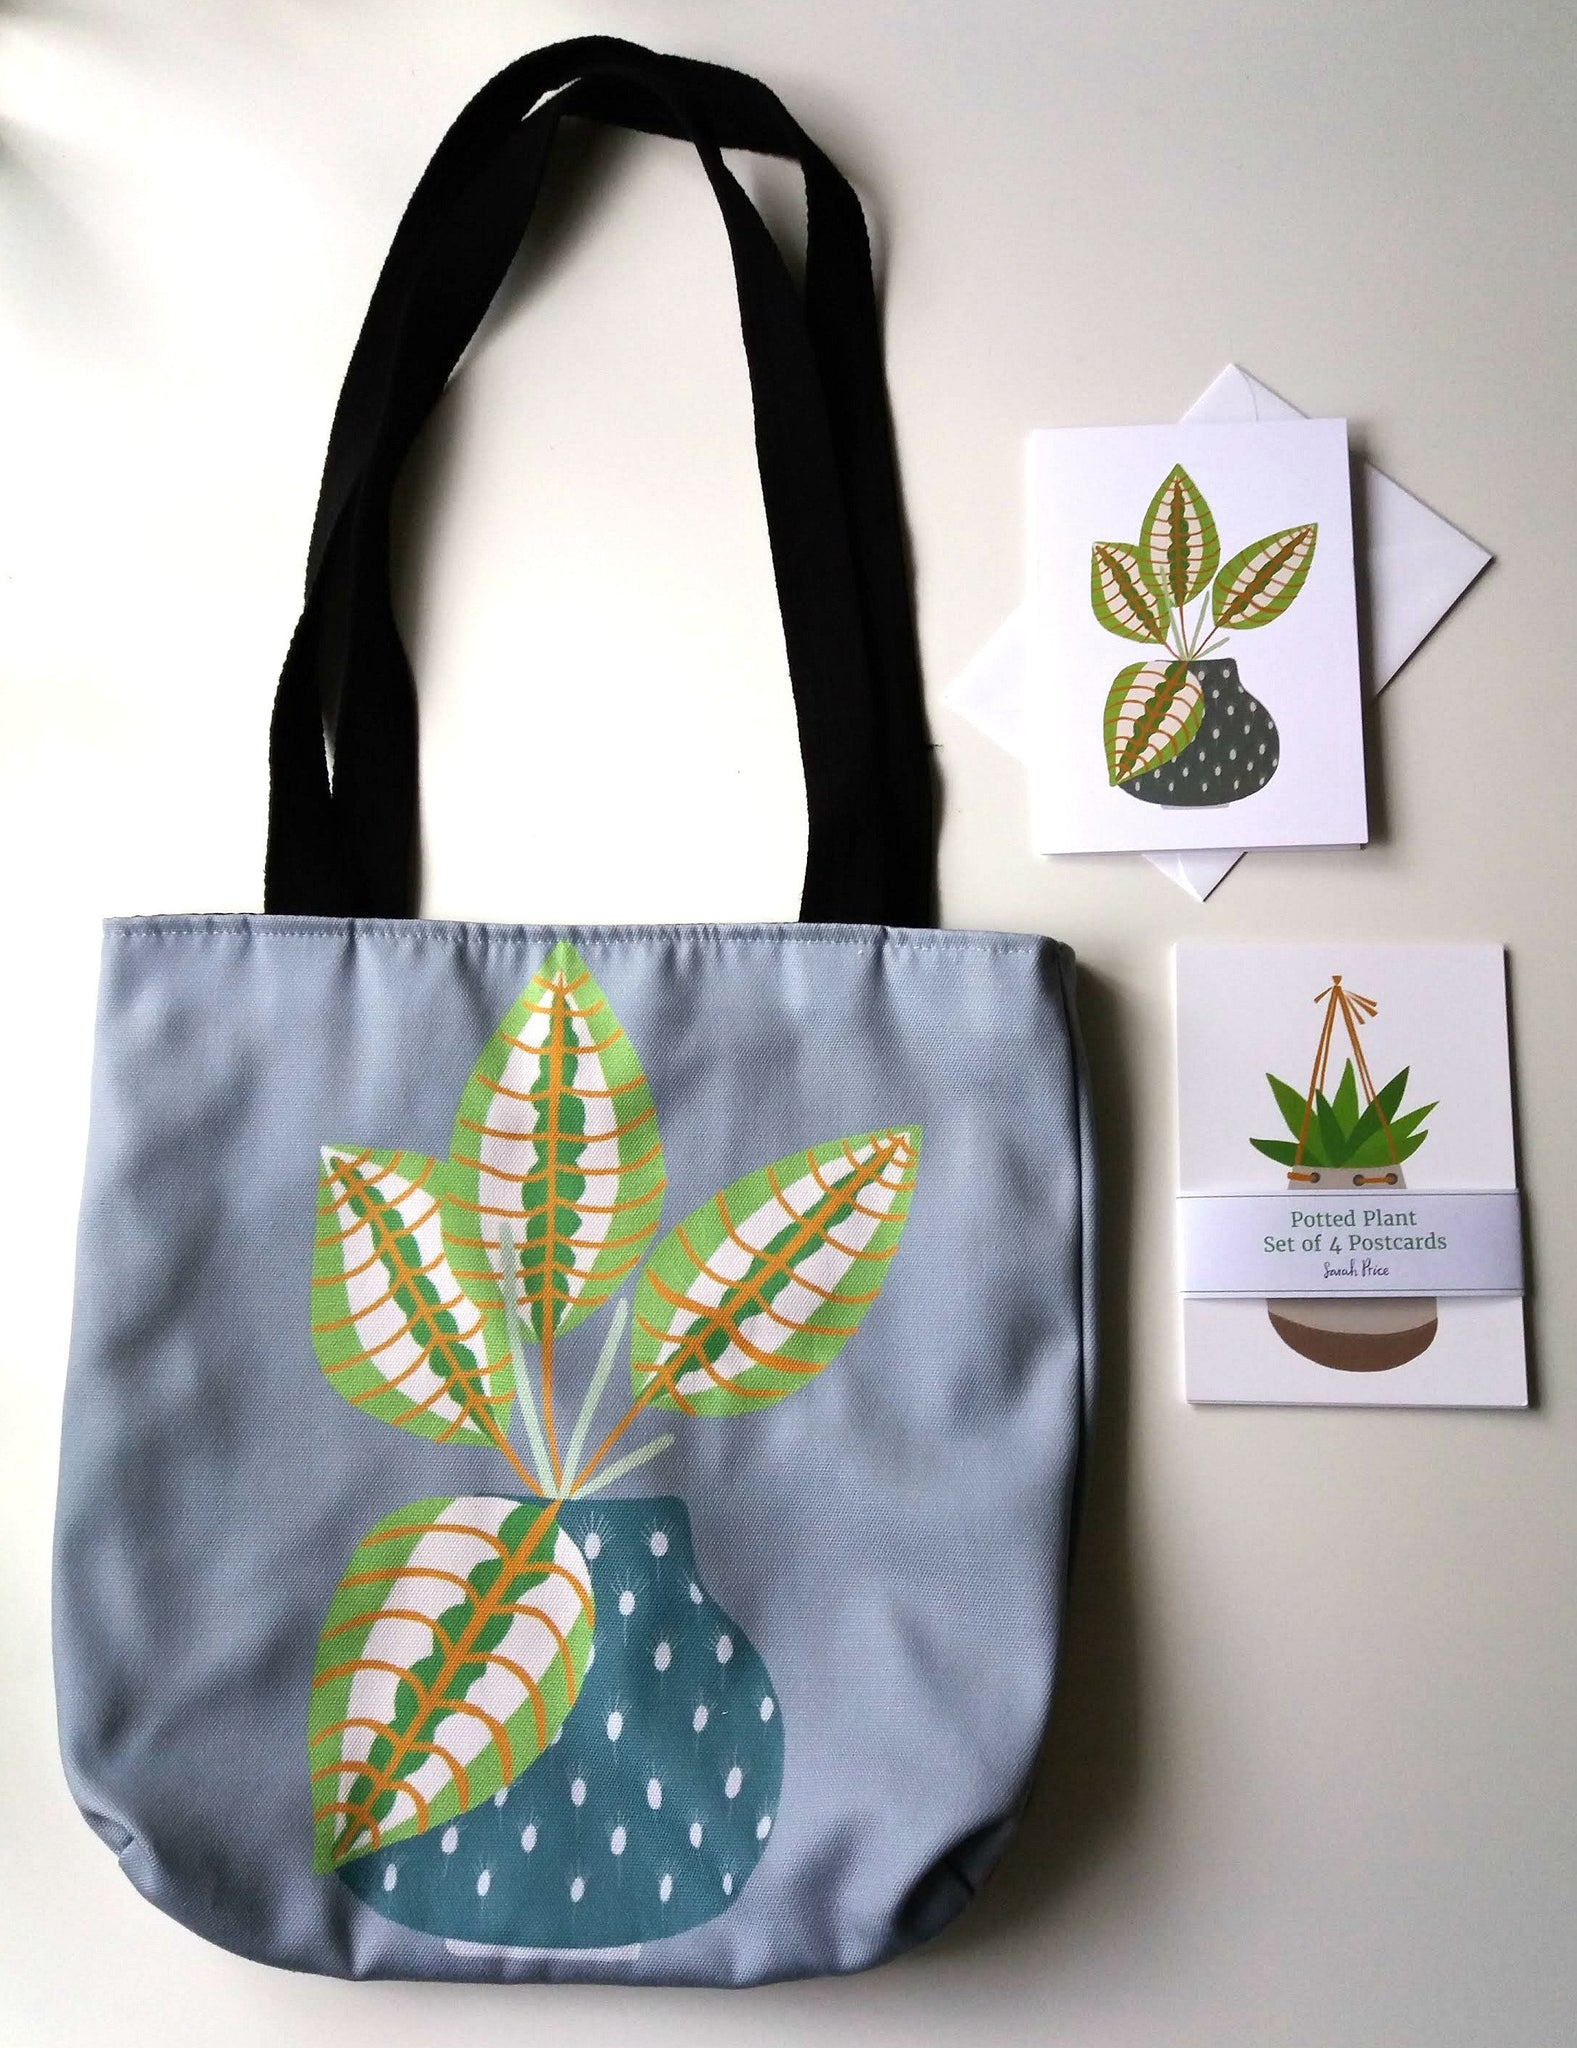 House Plants Teacher Tote Bag Thank You Gift, Prayer Plant Reusable Grocery Bag Gift Set - Edith May Designs